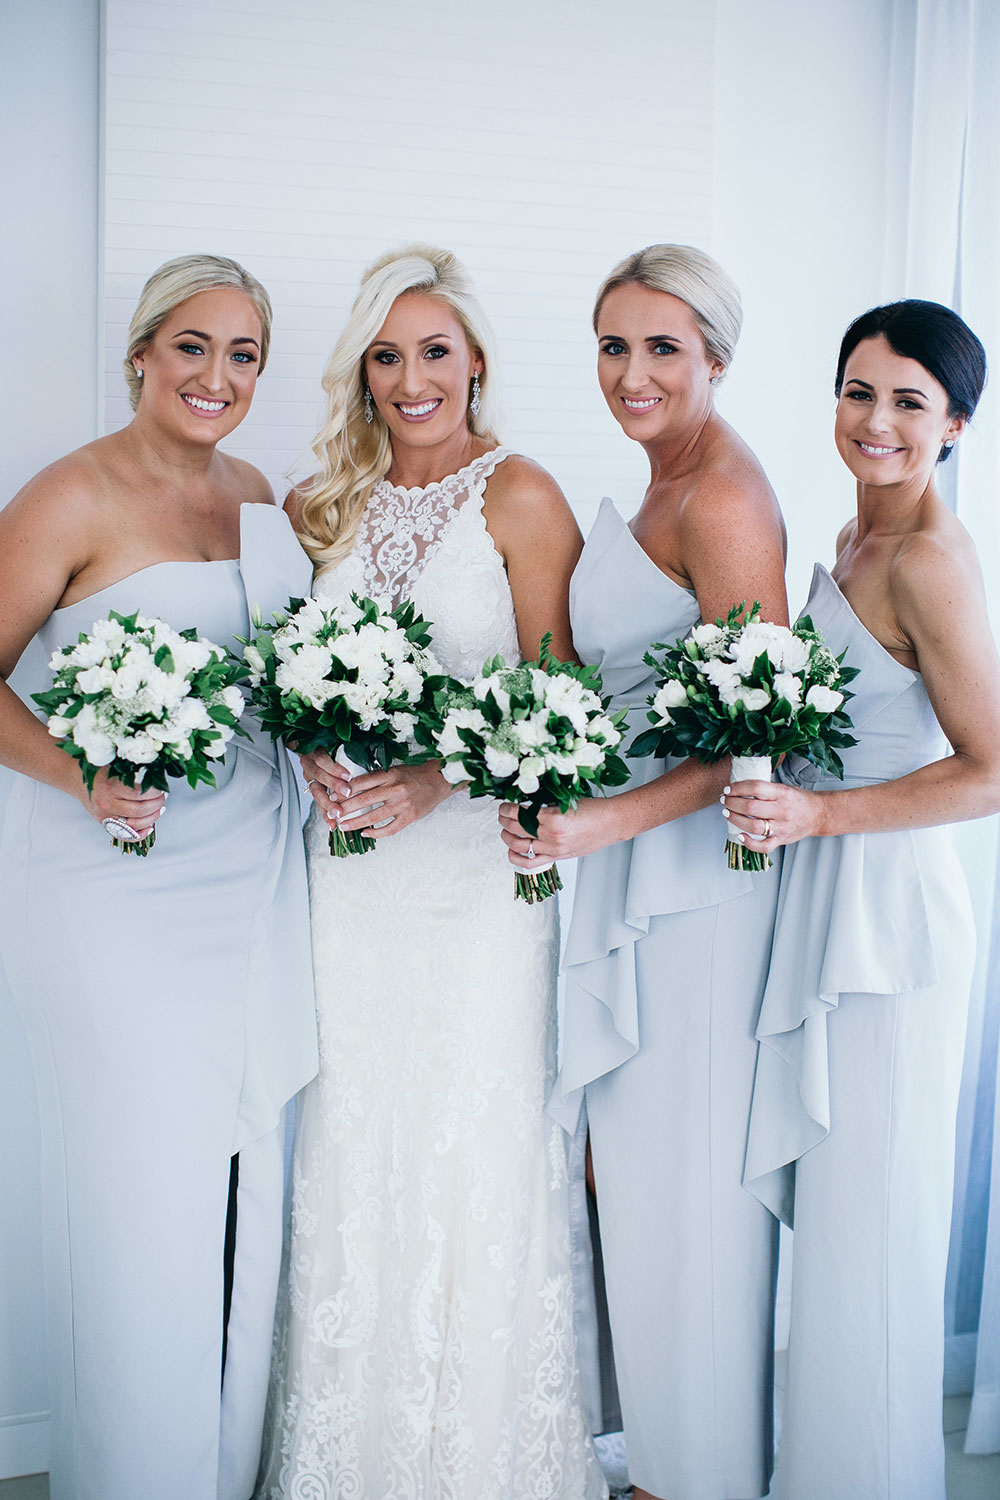 Laura and her bridesmaids